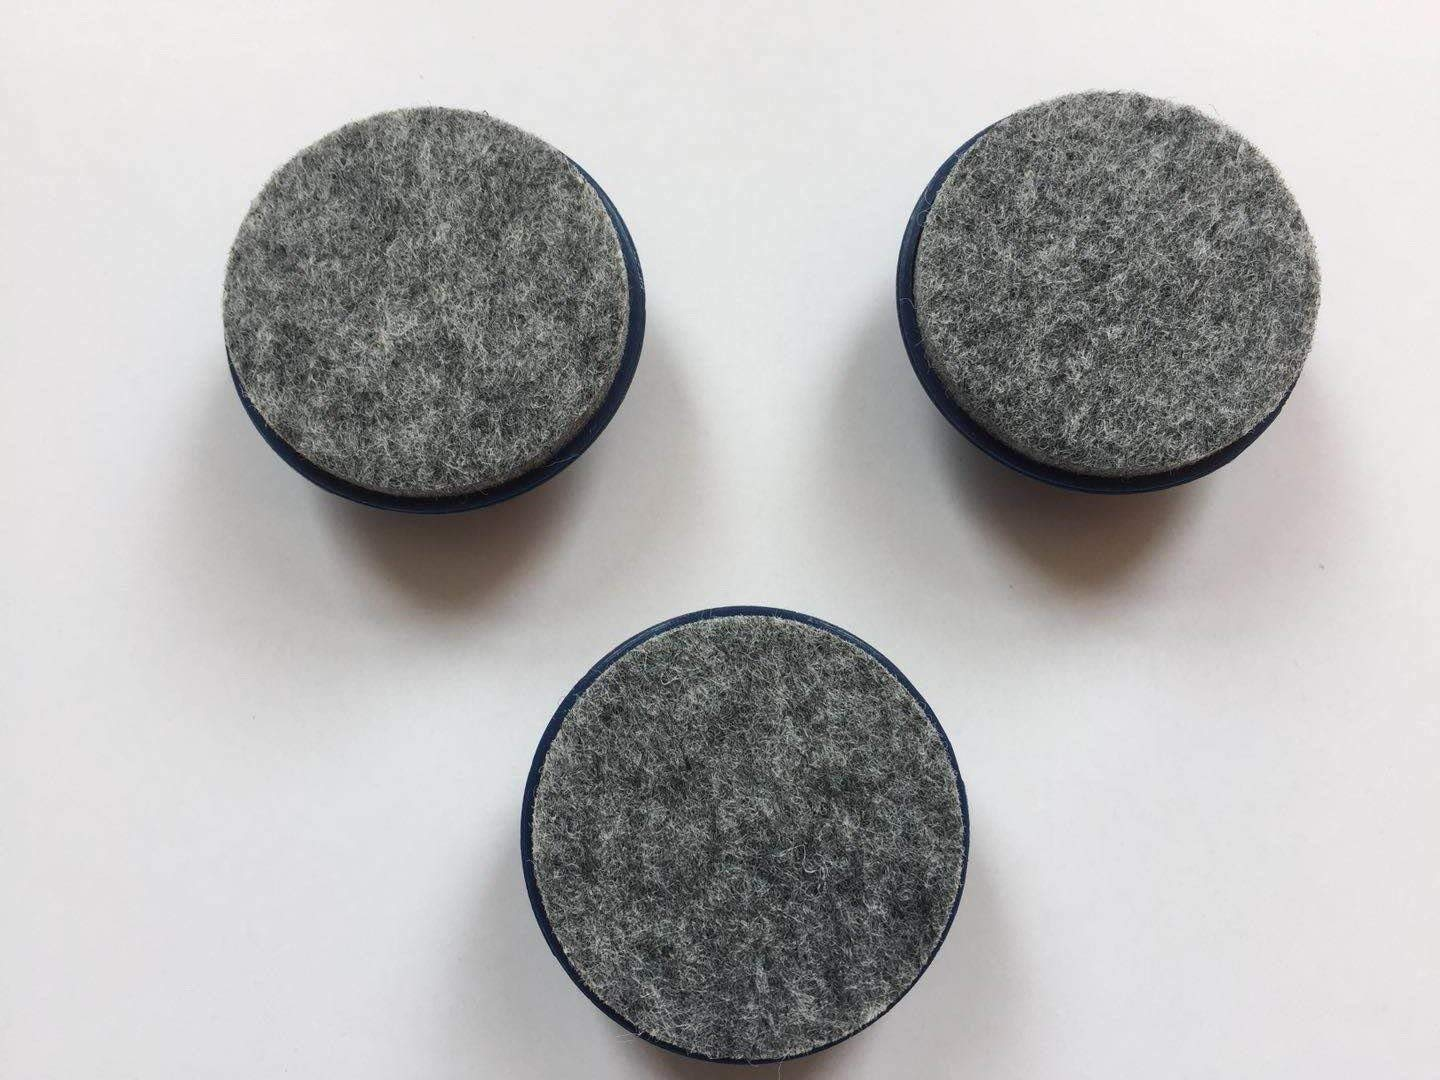 Quiet Glides with DuraFelt / 200 Count/Alternative to PreCut Tennis Balls/Blue/Snaps On/Reduce Noise/Prevent Scuffs and Scratches/Glides for Chairs, Desks, Tables, Stools Etc.